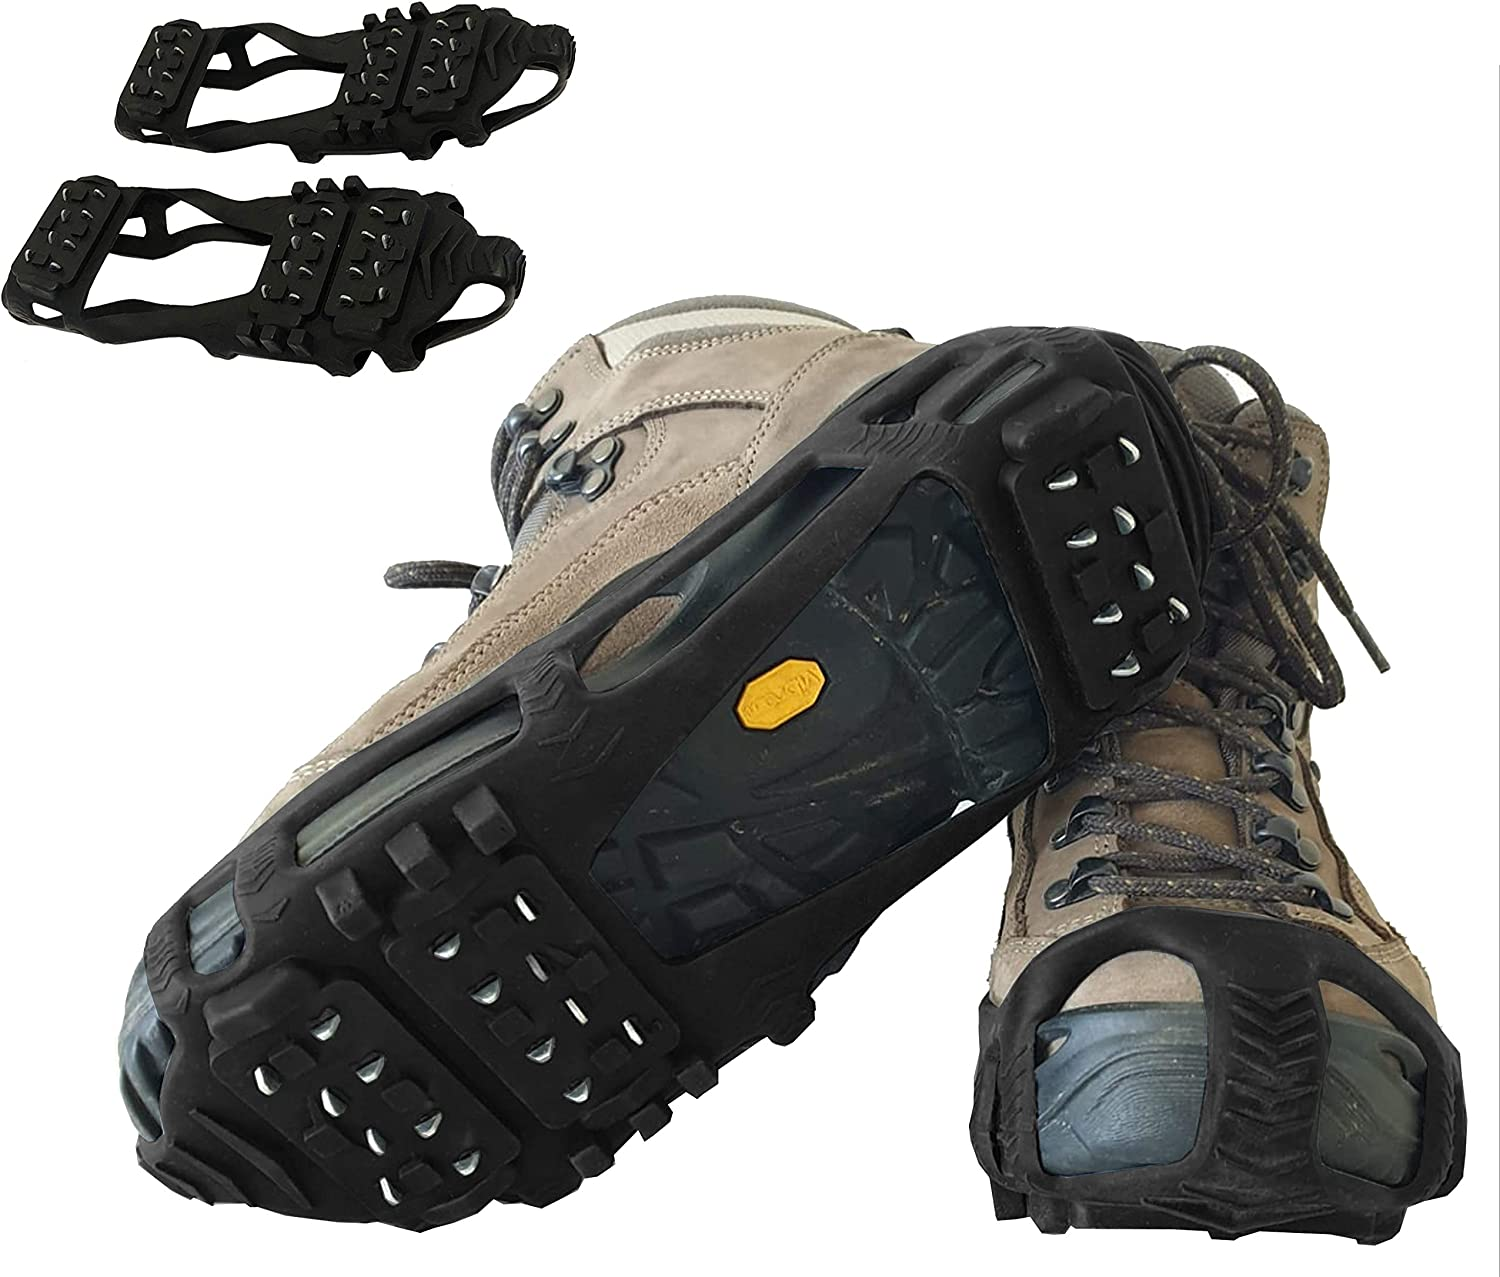 Limm Crampons Ice Traction Cleats - Microspikes Grips Quickly & Easily Over Footwear for Snow and Ice Walk, Hike, Climb, Ice Fishing - Portable - Sizes - M/L/XL